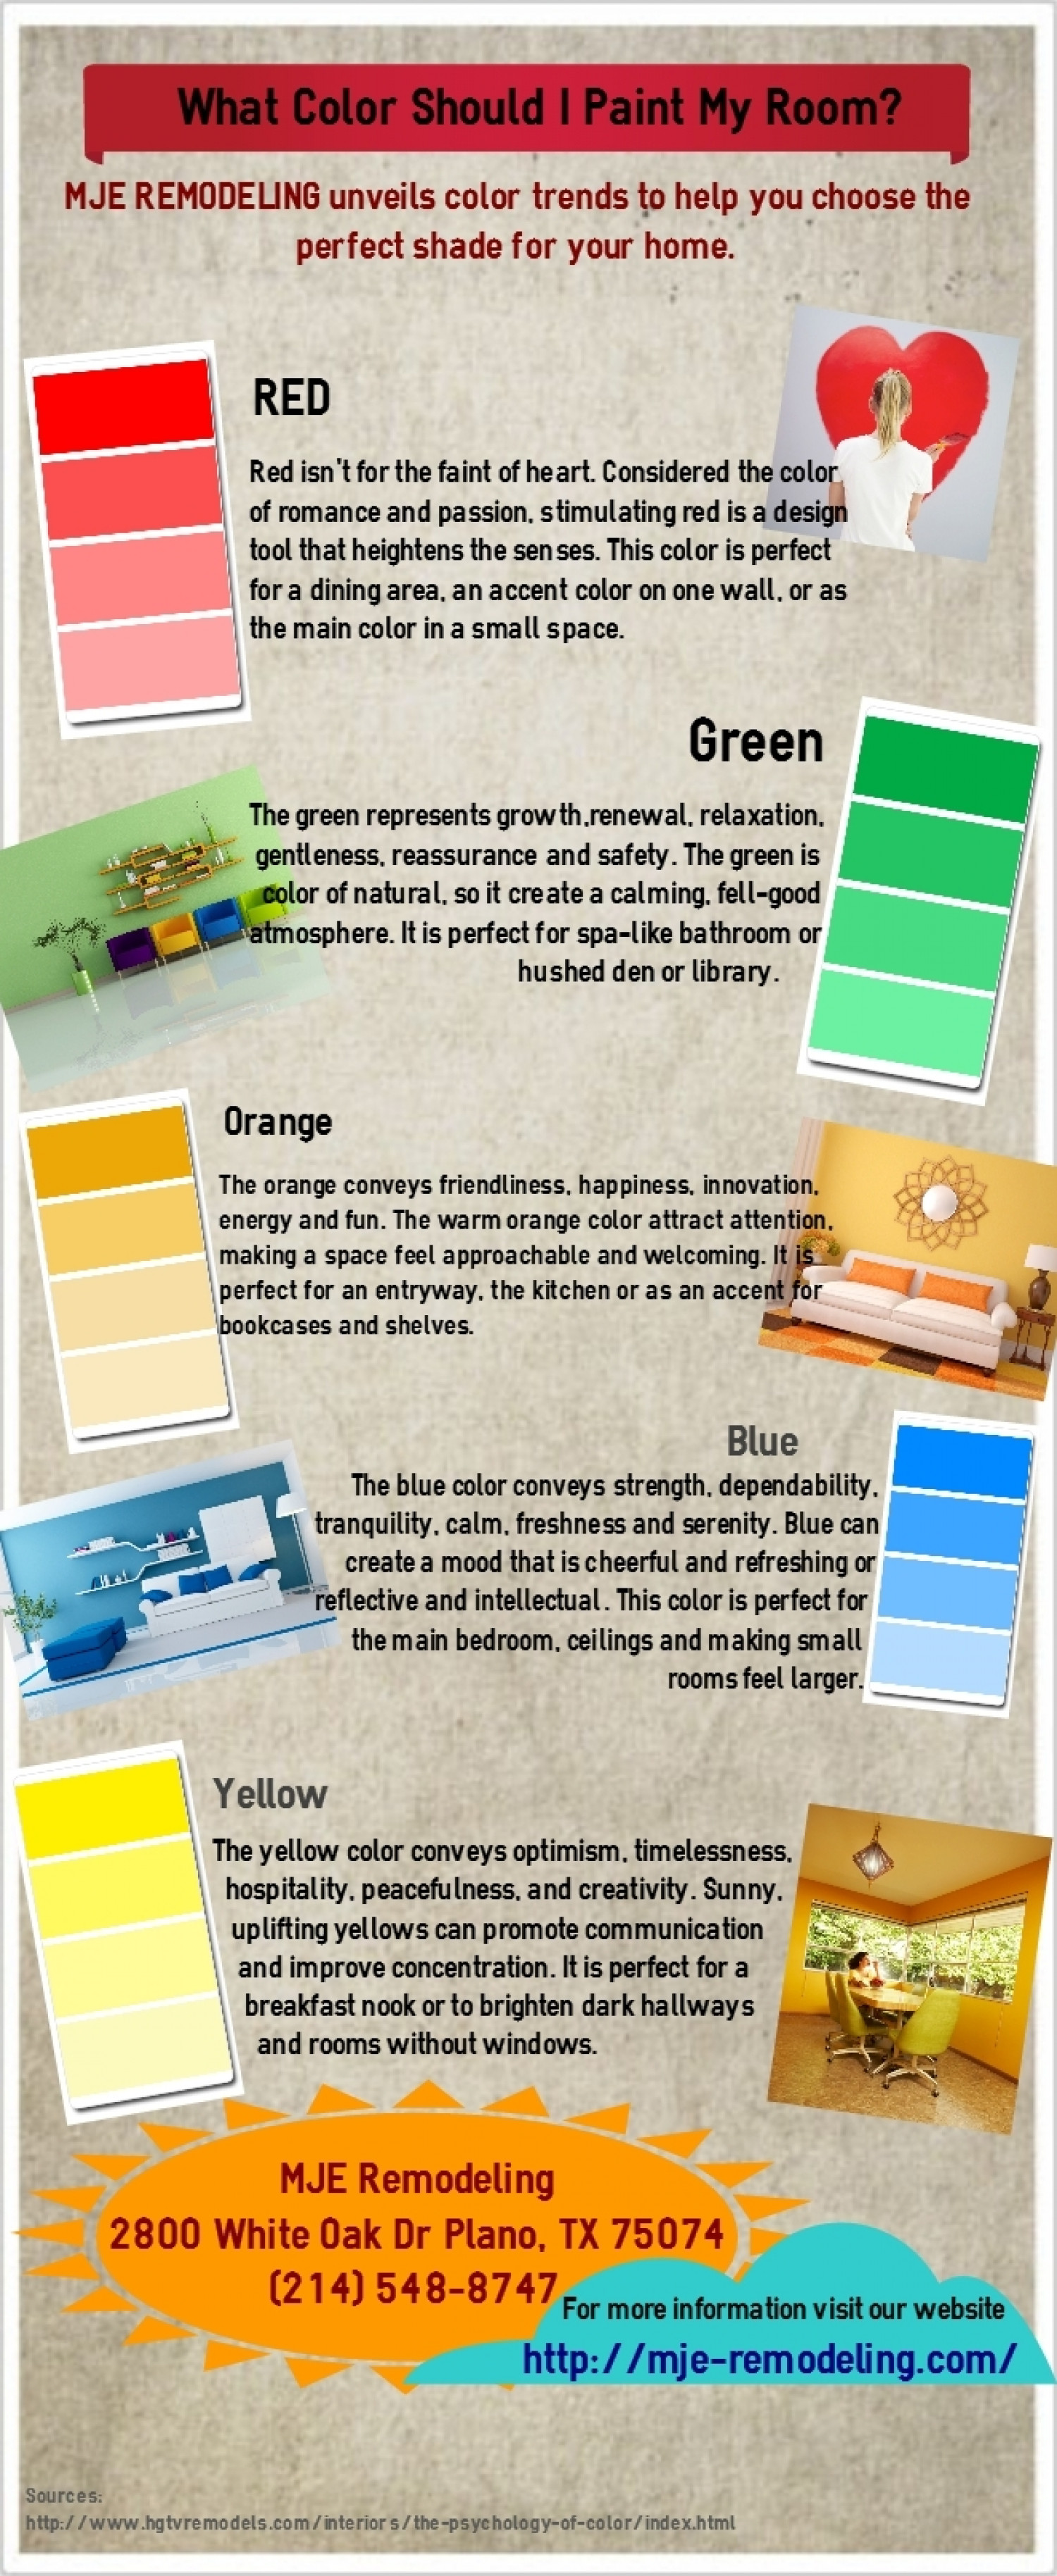 What color should i paint my room - What color should i paint my room ...